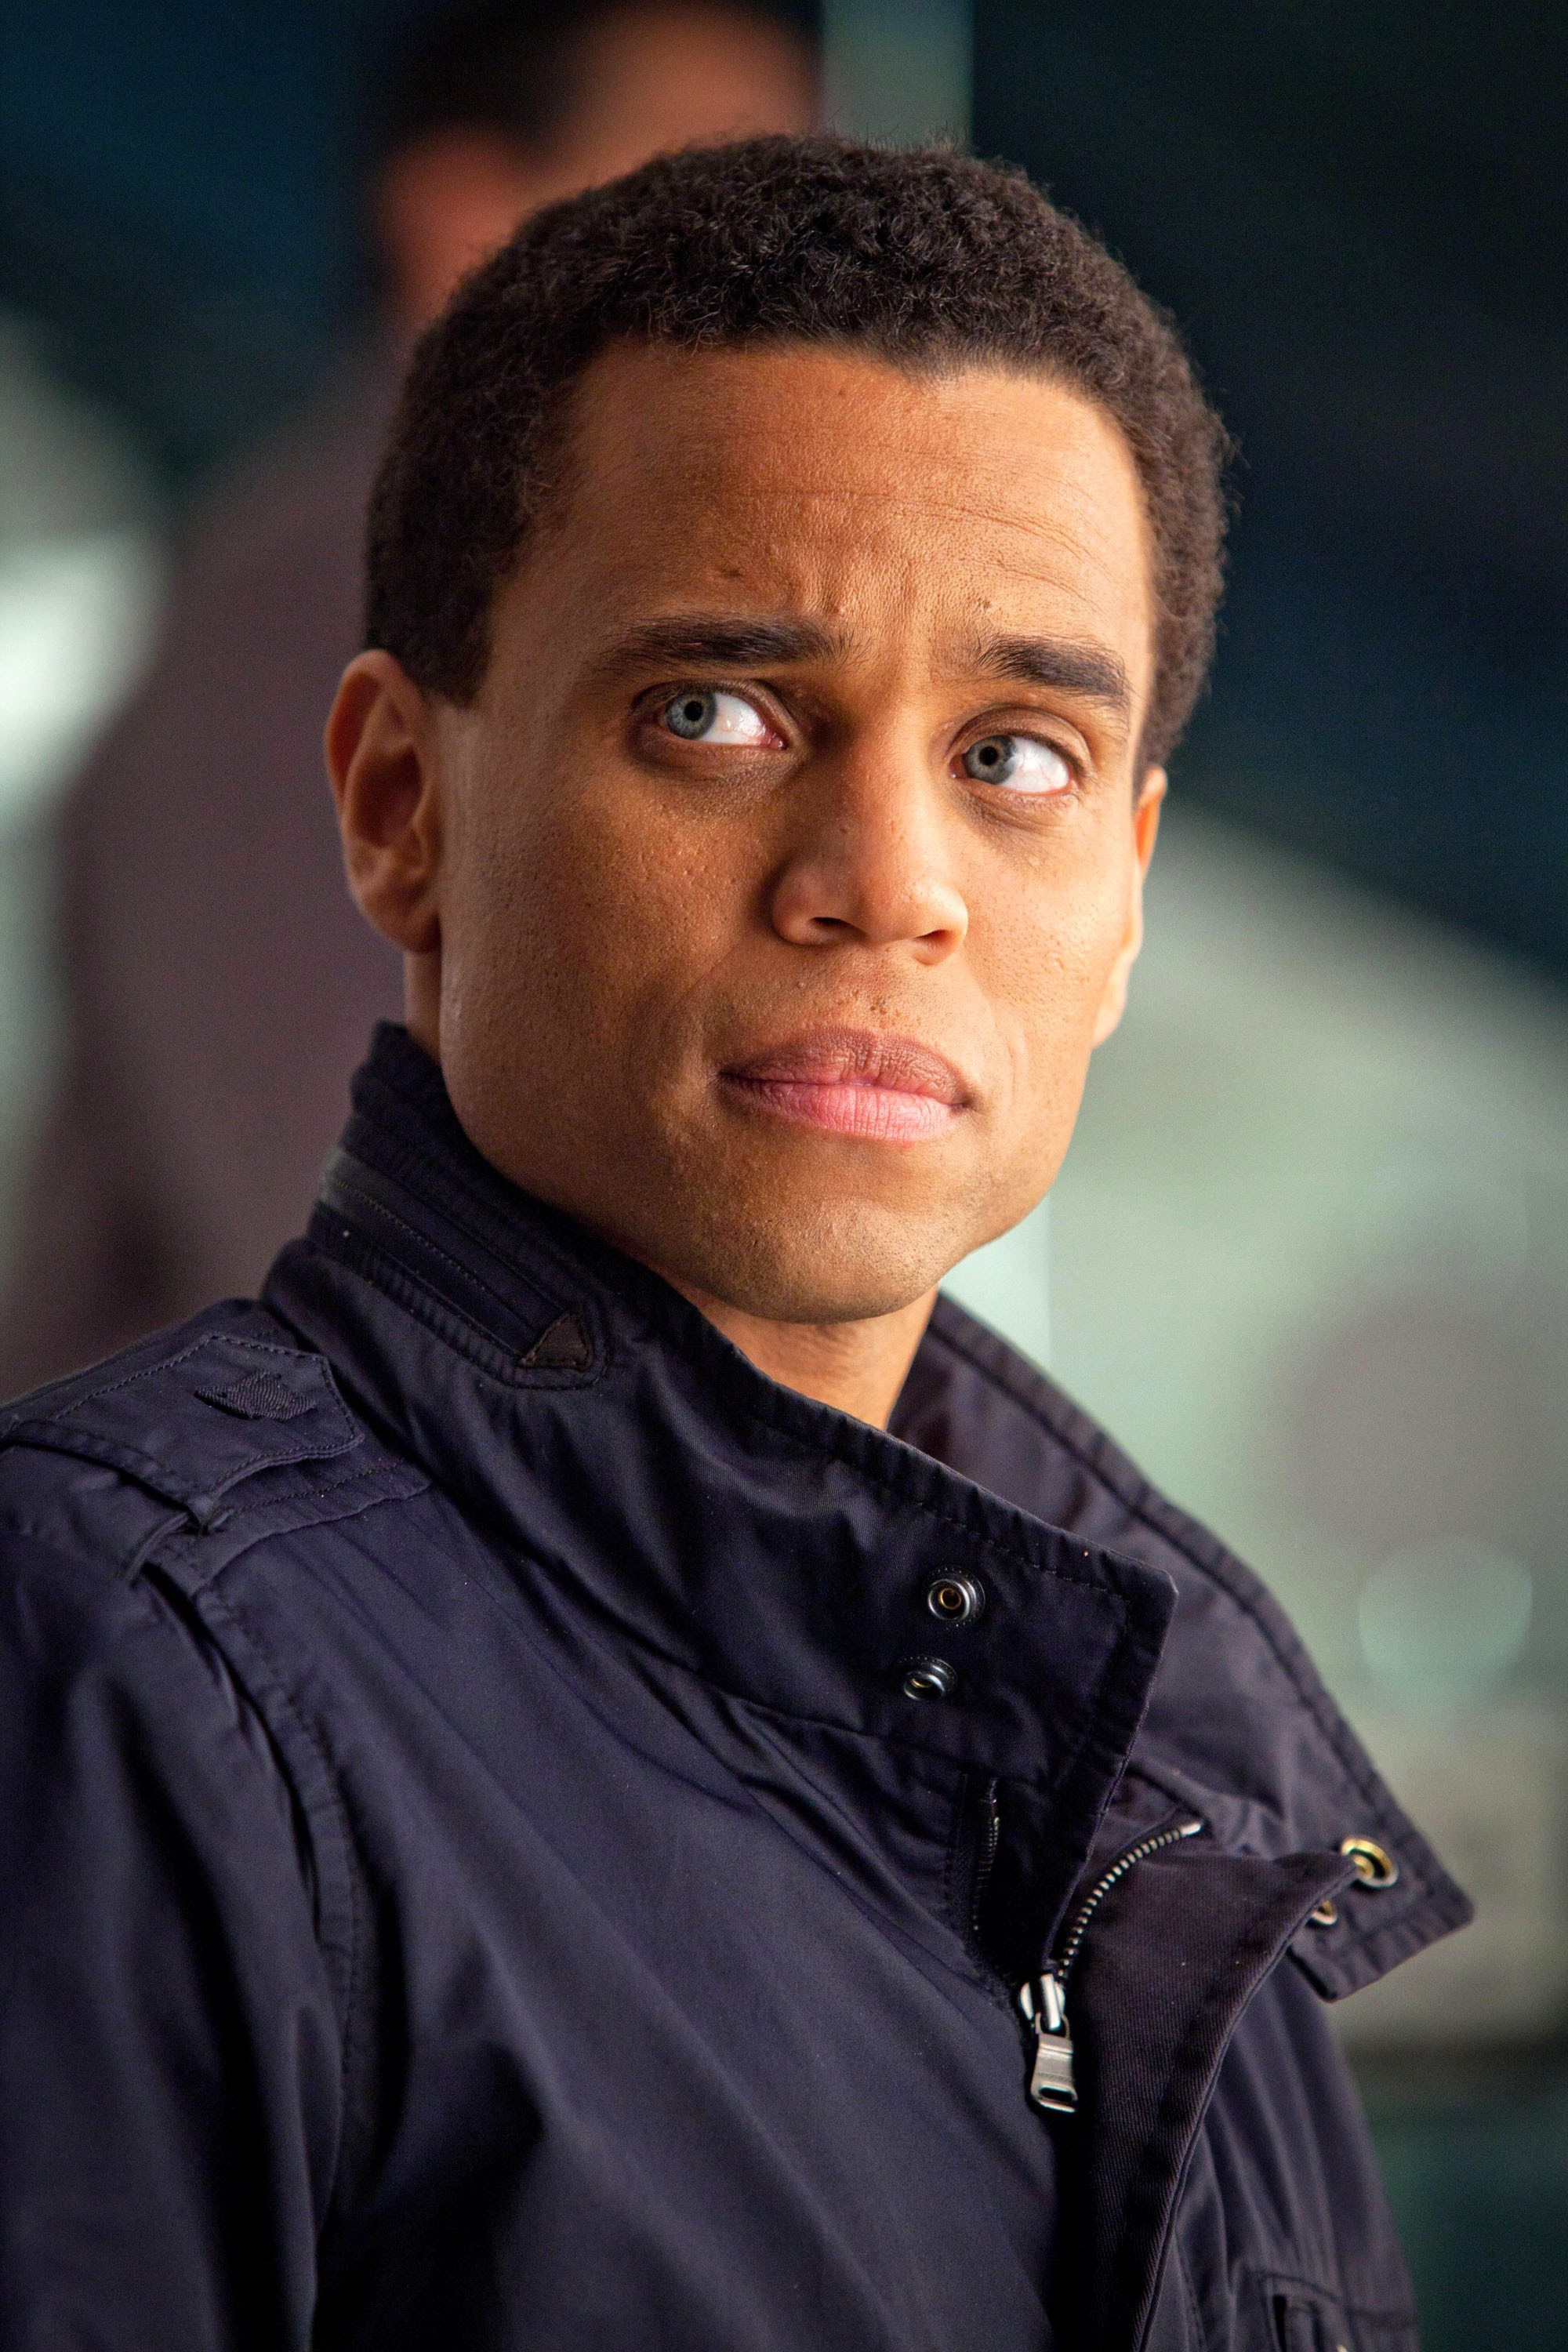 Michael Ealy | Known people - famous people news and ...